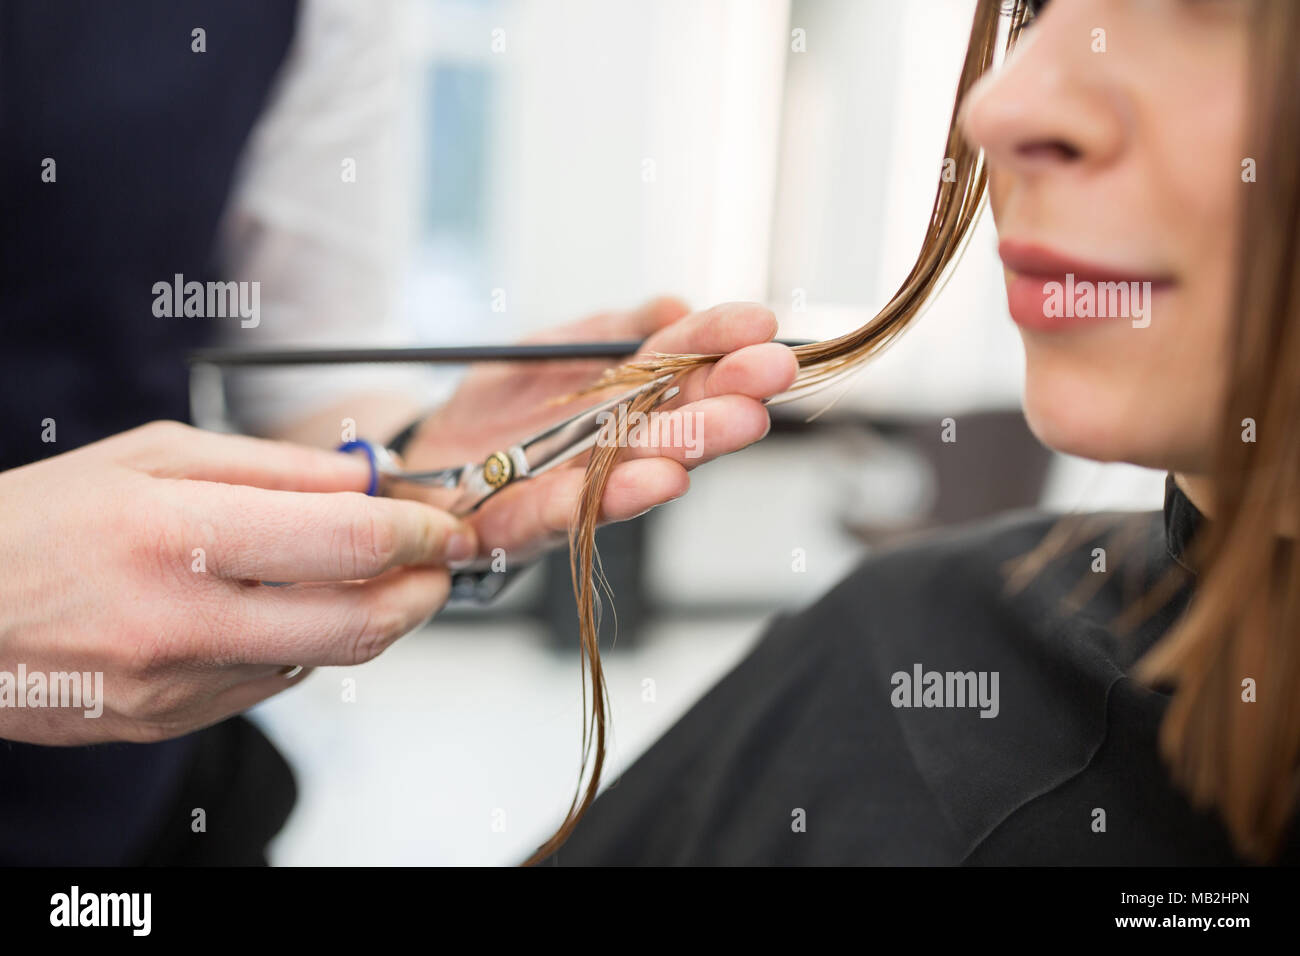 Cropped portrait of glad woman having hair cut at hairdresser - Stock Image